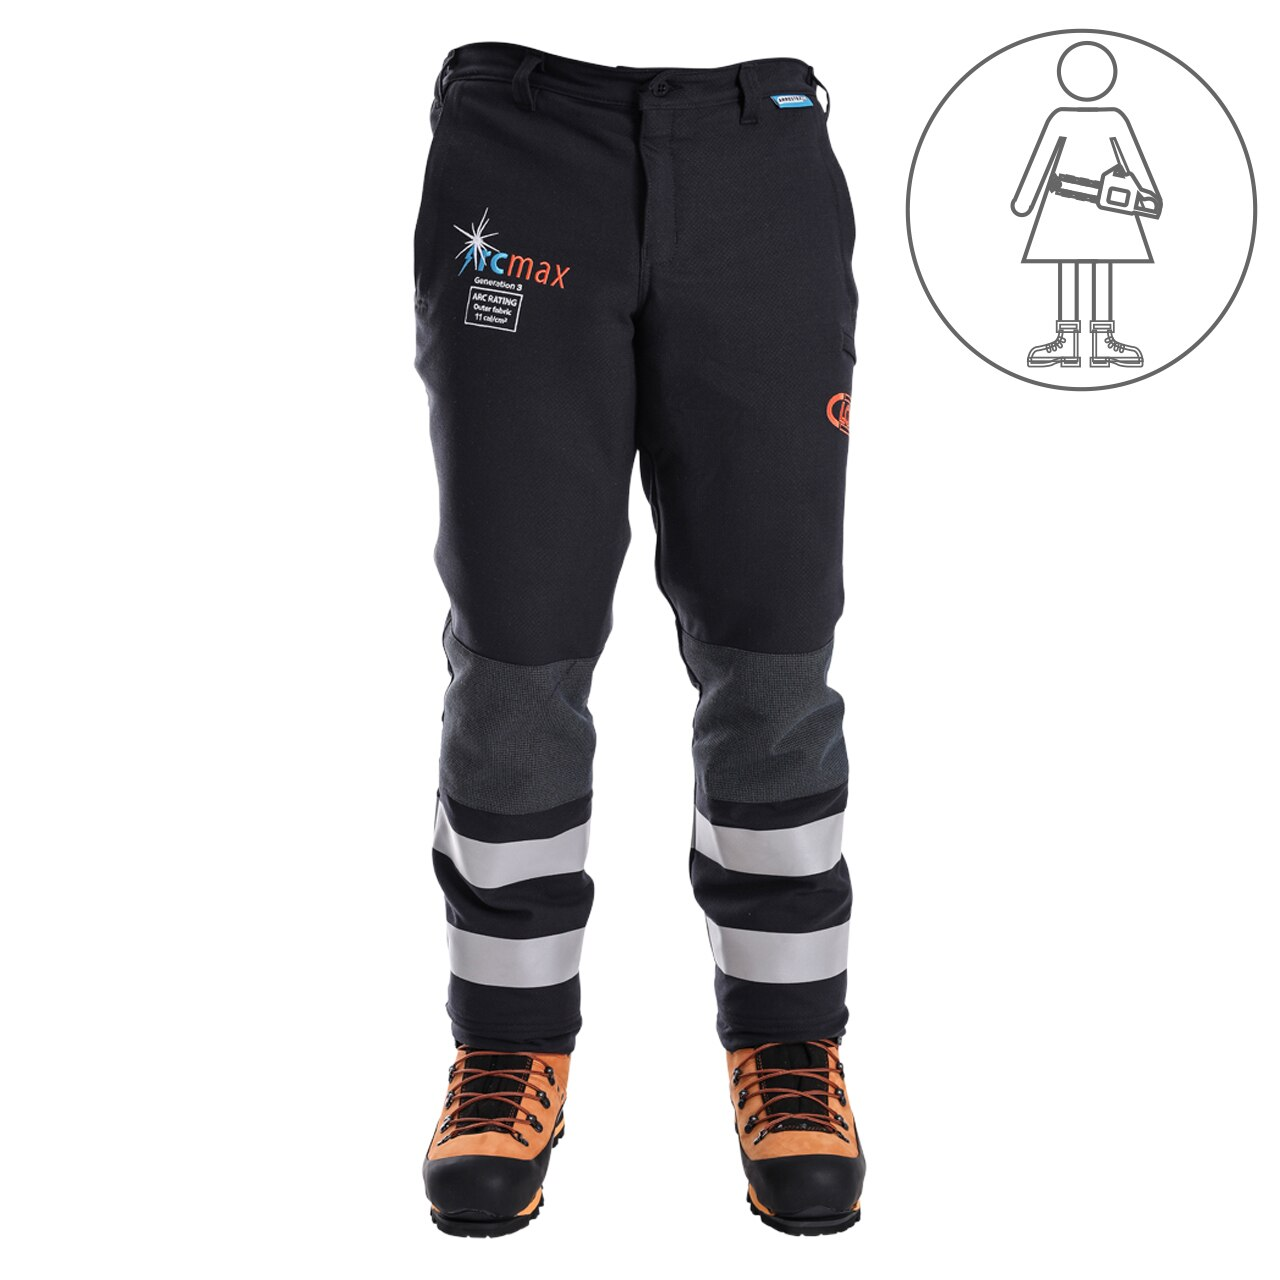 Clogger Arcmax Gen3 Arc Rated Fire Resistant Women's Premium 360 Wrap Chainsaw Pants (Now With Stretch)